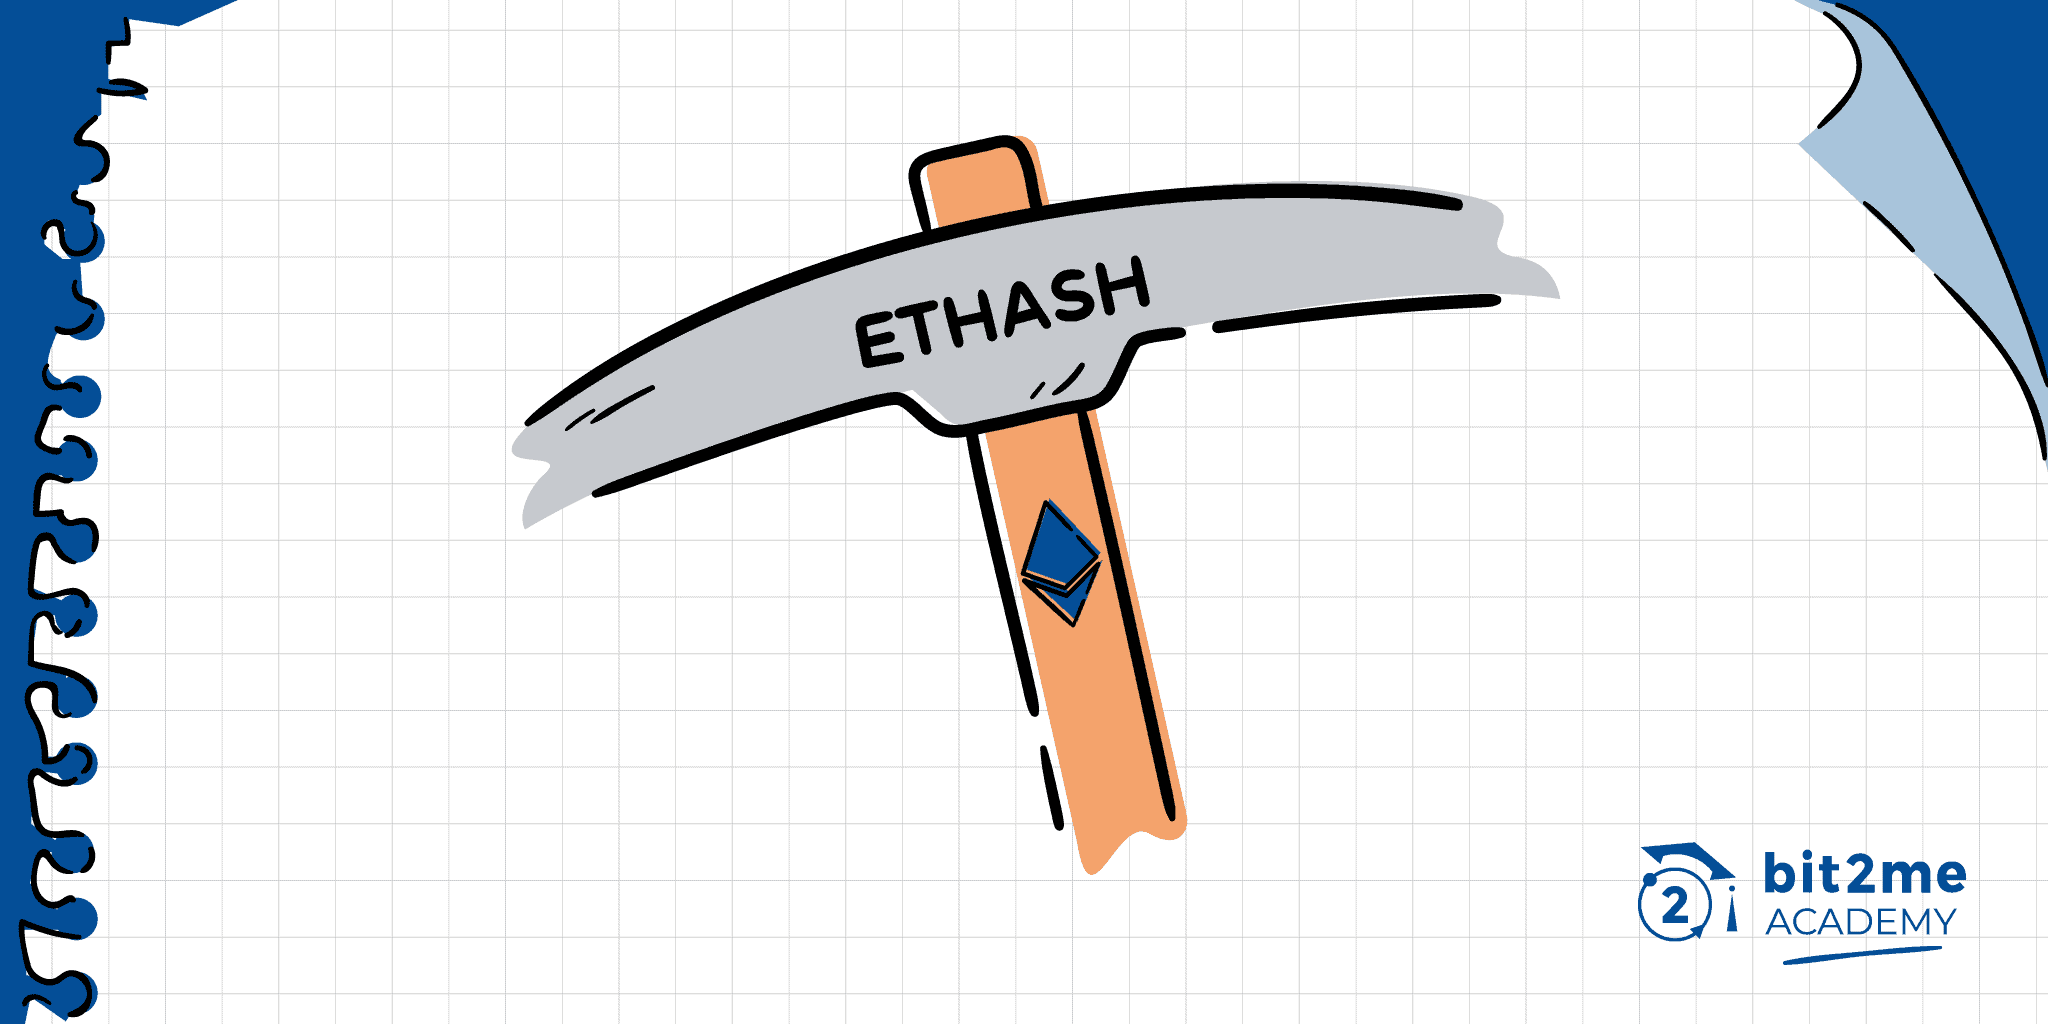 which is ethash algorithm, which is ethereum algorithm, which is ethash